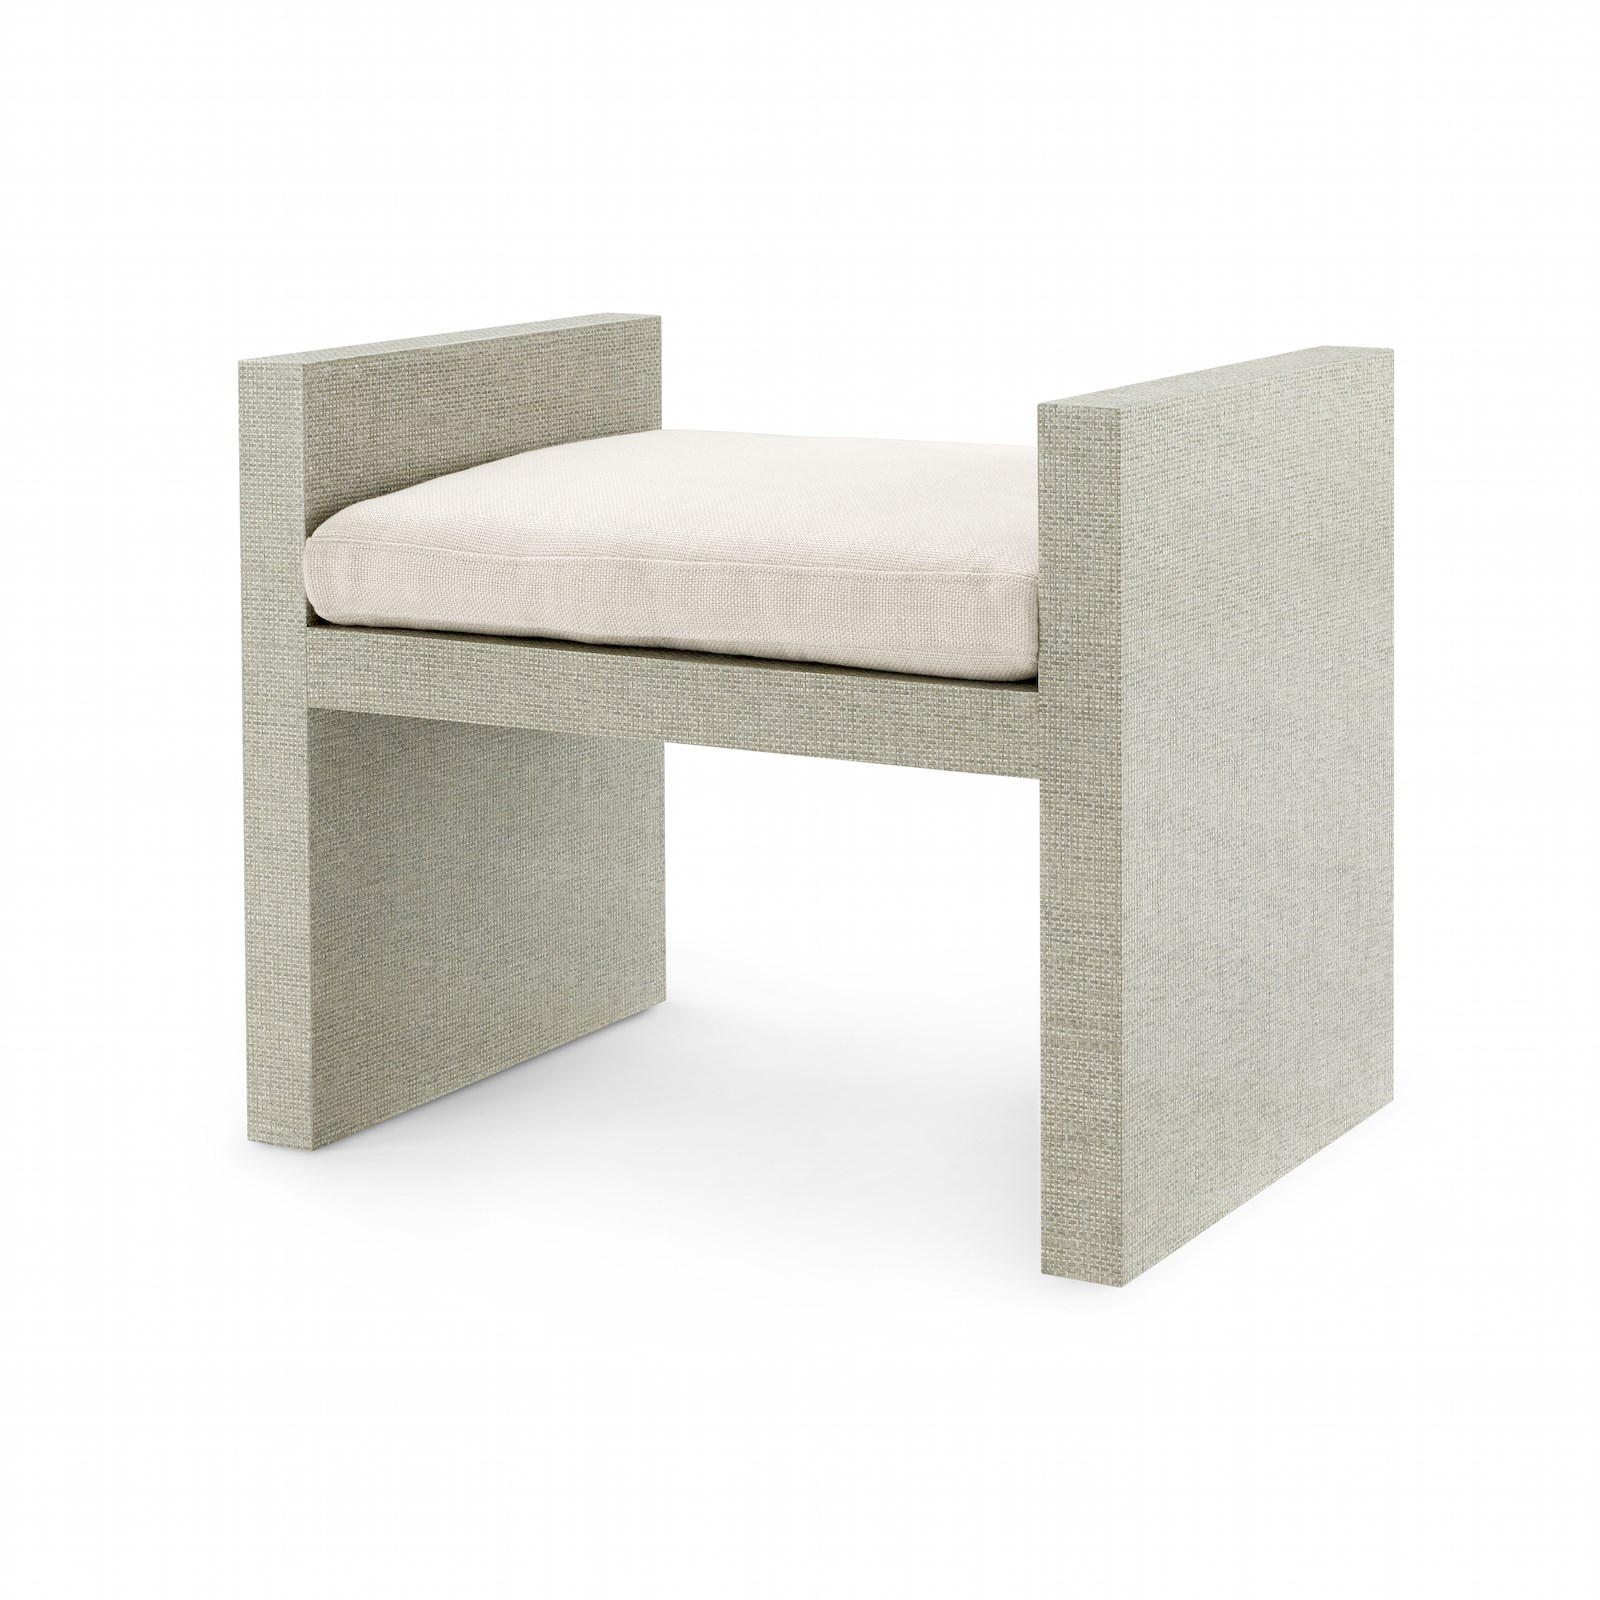 Superb Harlet Lacquered Linen Bench Mecox Gardens Gmtry Best Dining Table And Chair Ideas Images Gmtryco